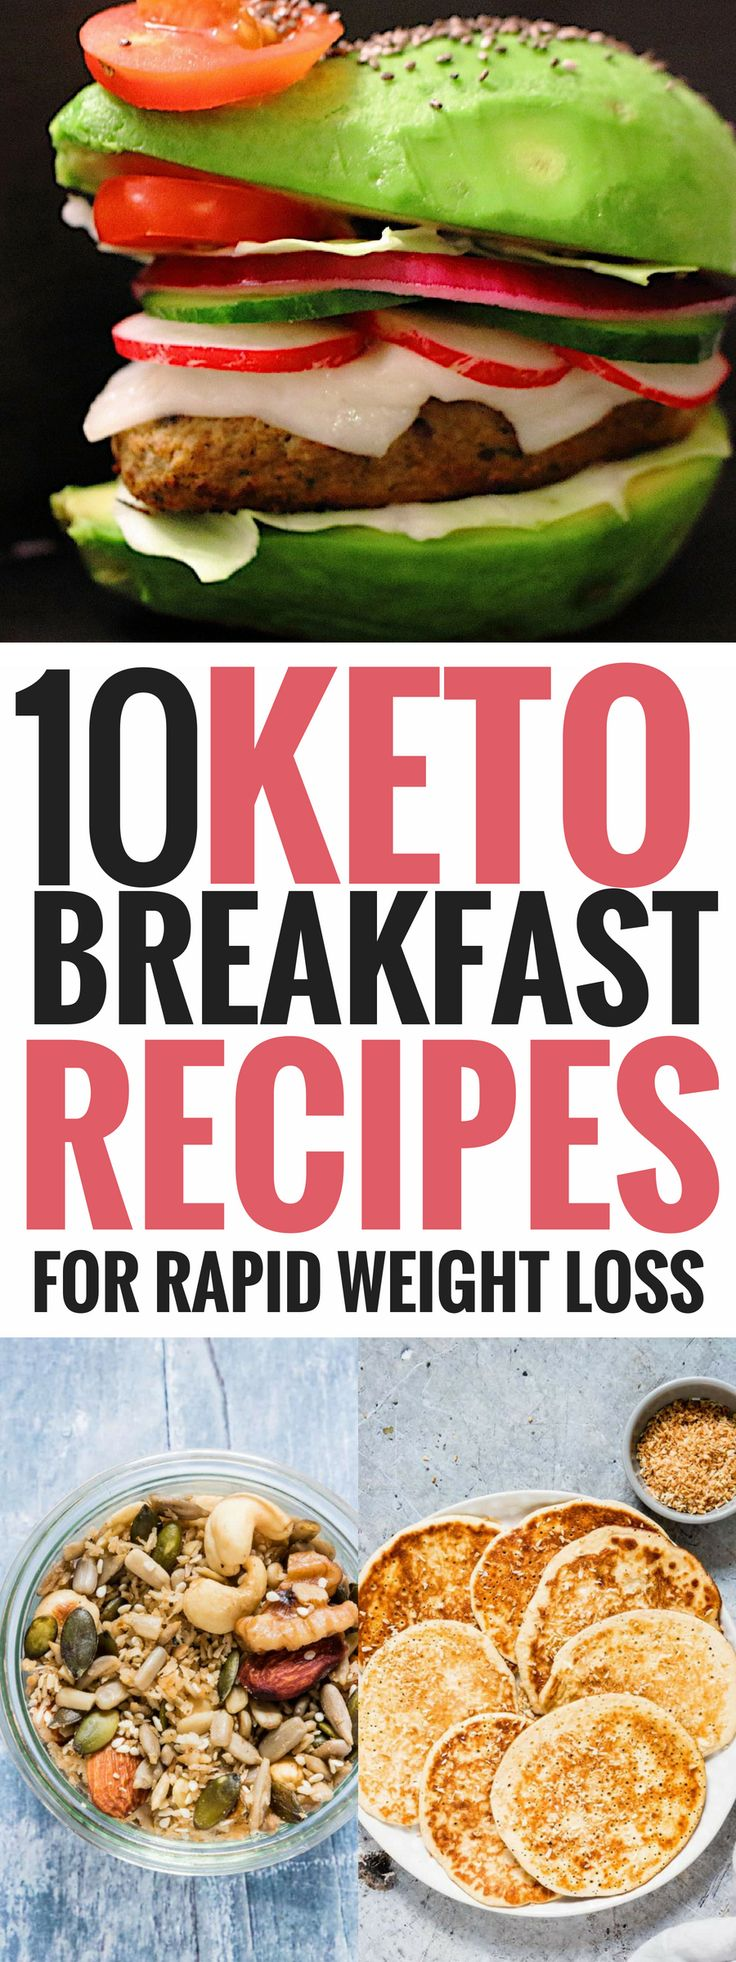 10 Ketogenic Breakfast Recipes That Will Help You Lose Weight Fast